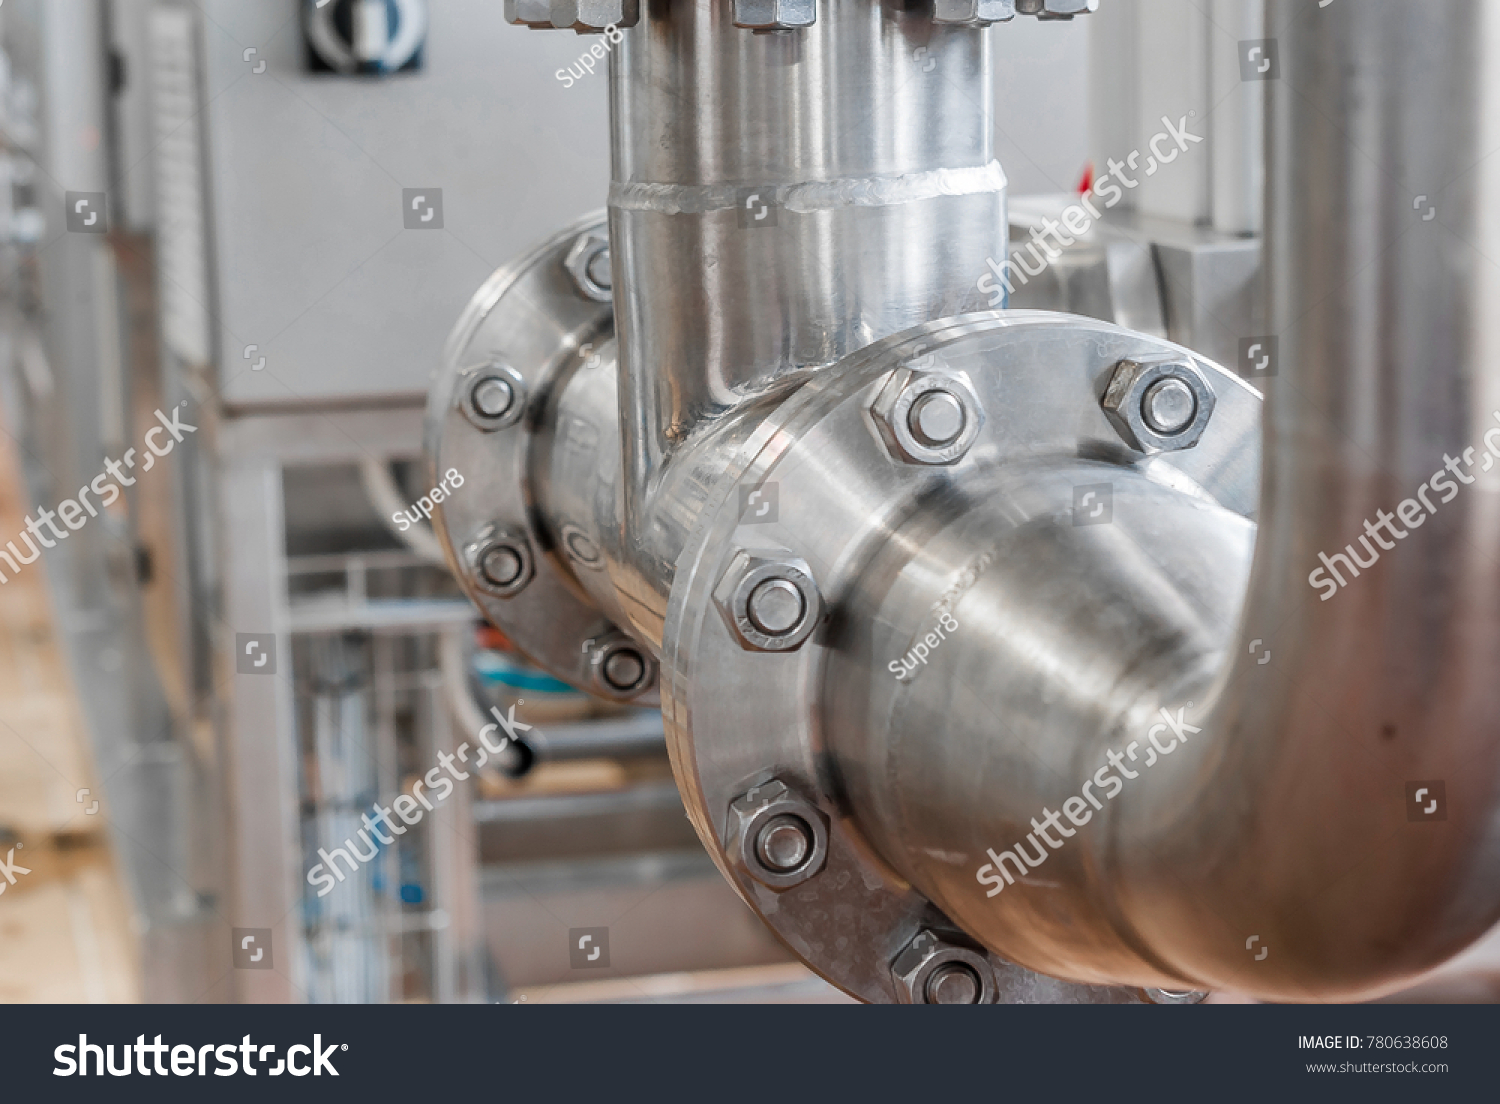 stock-photo-connection-of-stainless-stee